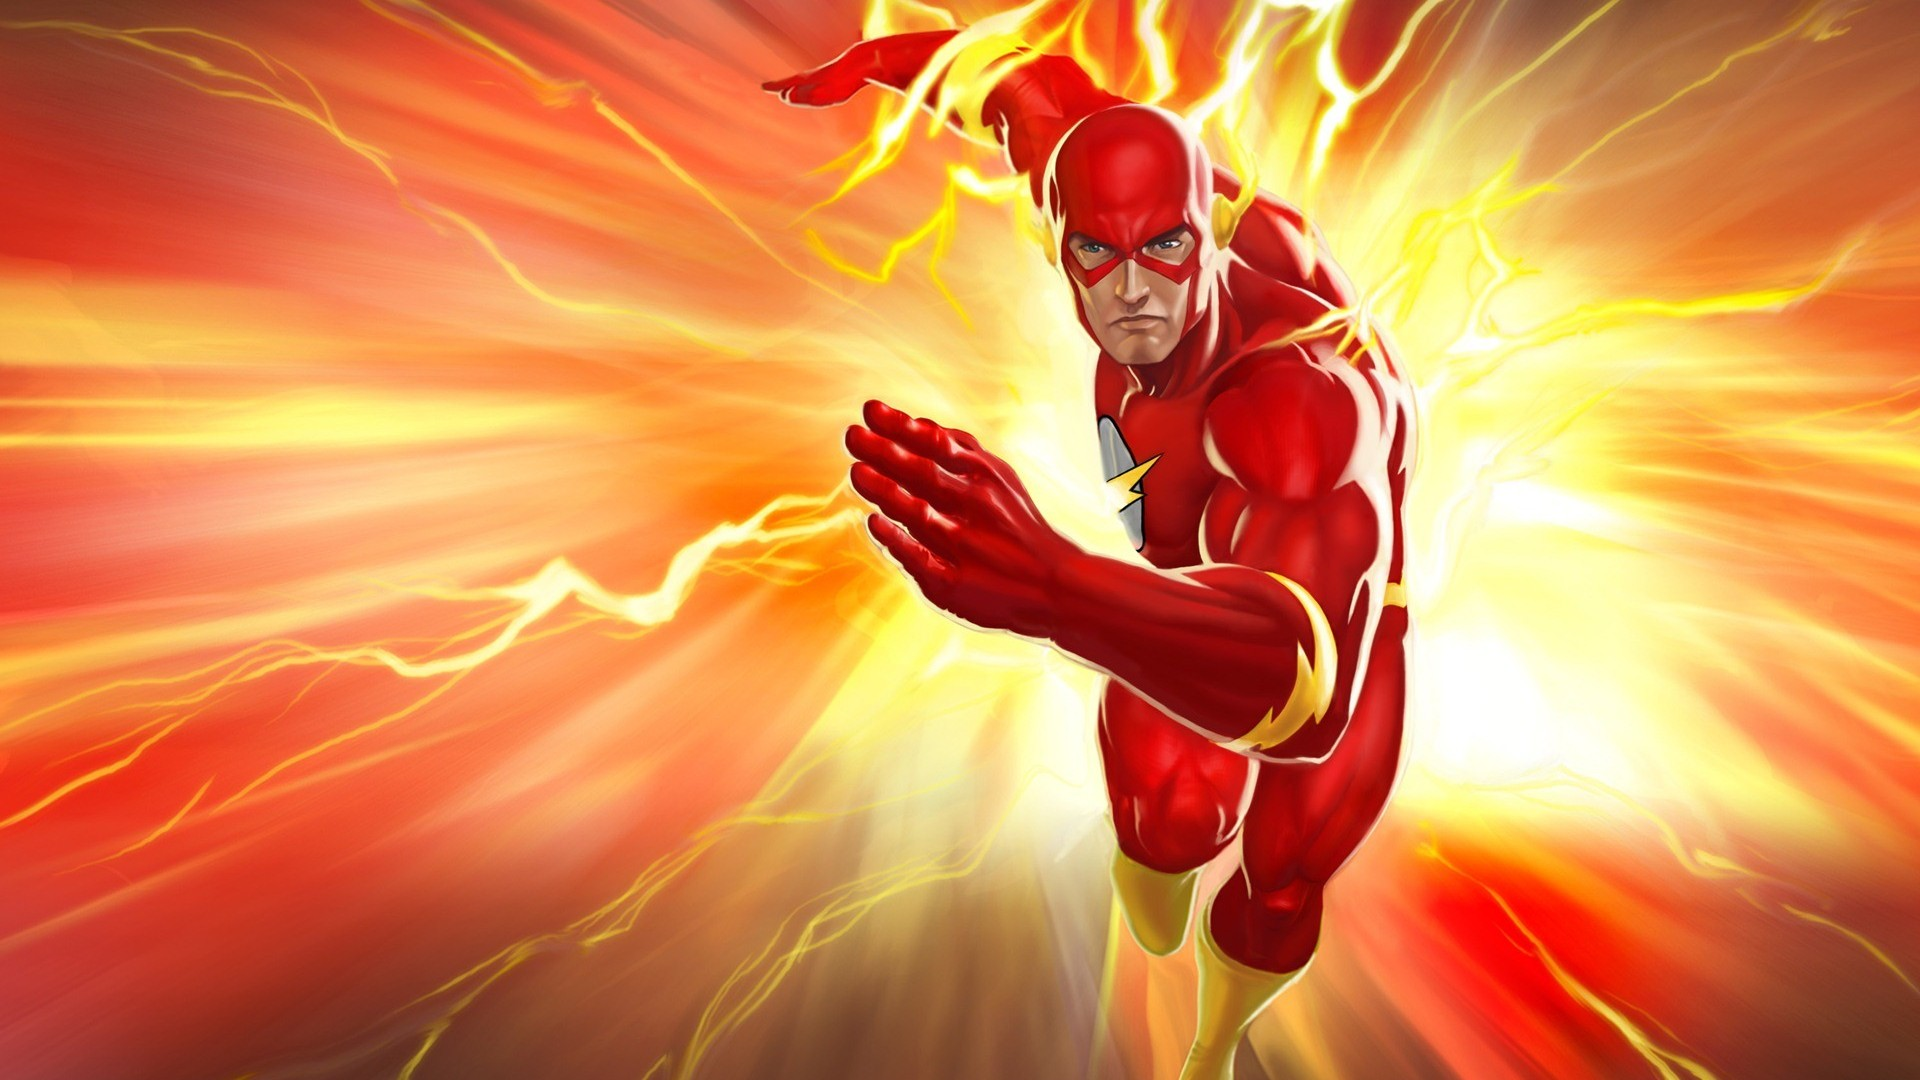 20 Amazing The Flash Wallpaper   My Wallpapers Hub 1920x1080